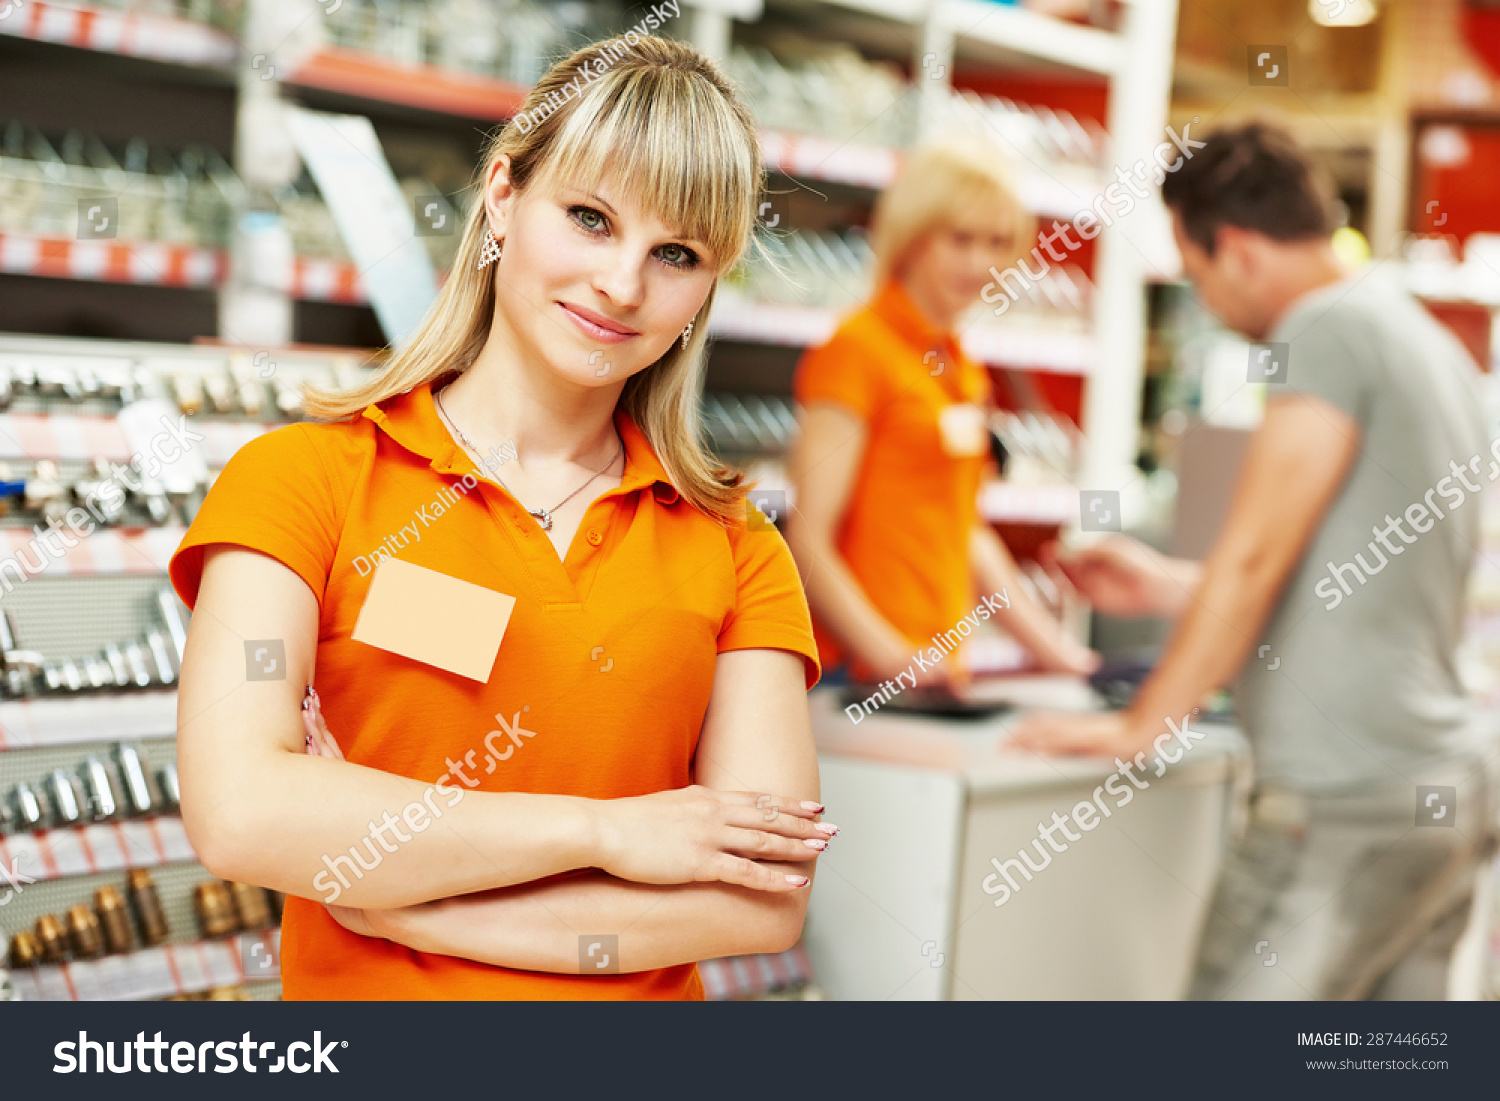 positive female seller shop assistant portrait stock photo positive female seller or shop assistant portrait in hardware supermarket store